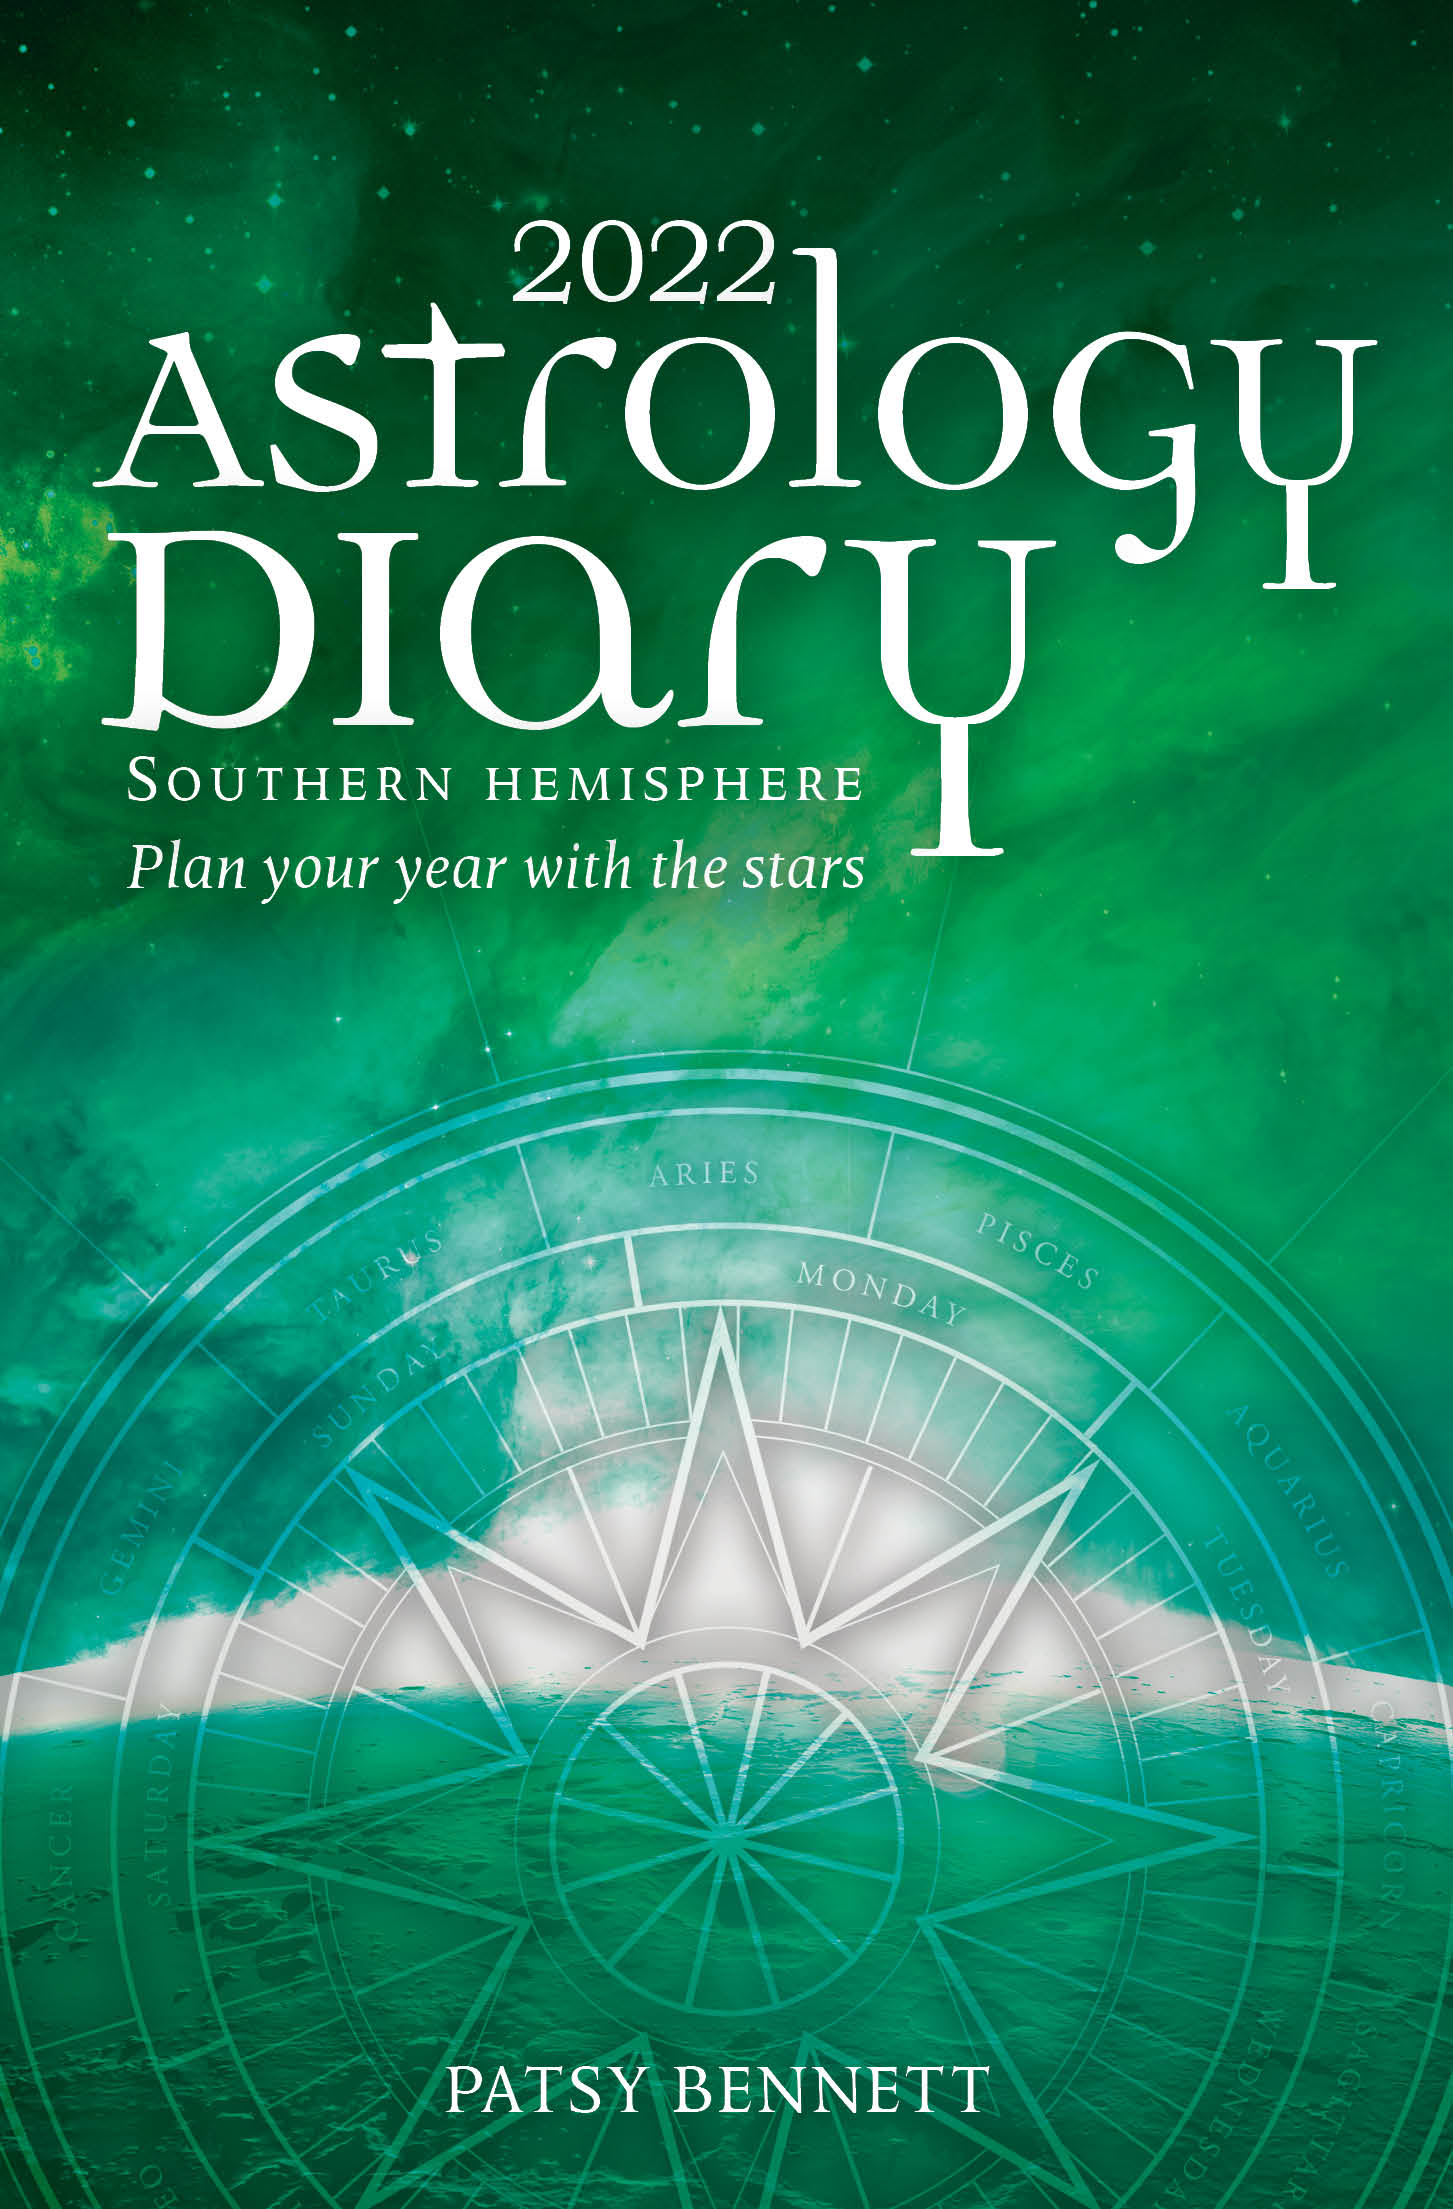 2022 Astrology Diary -  Southern Hemisphere